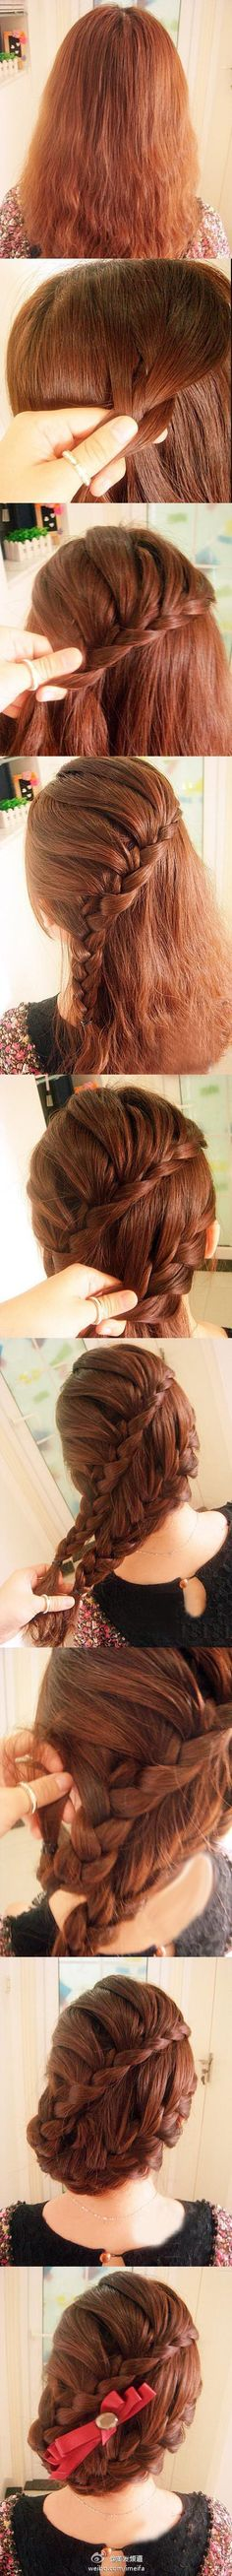 Braid Tutorial <3 This page also has a great makeup tutorial and one of the best engagement picture set ever! Check :)